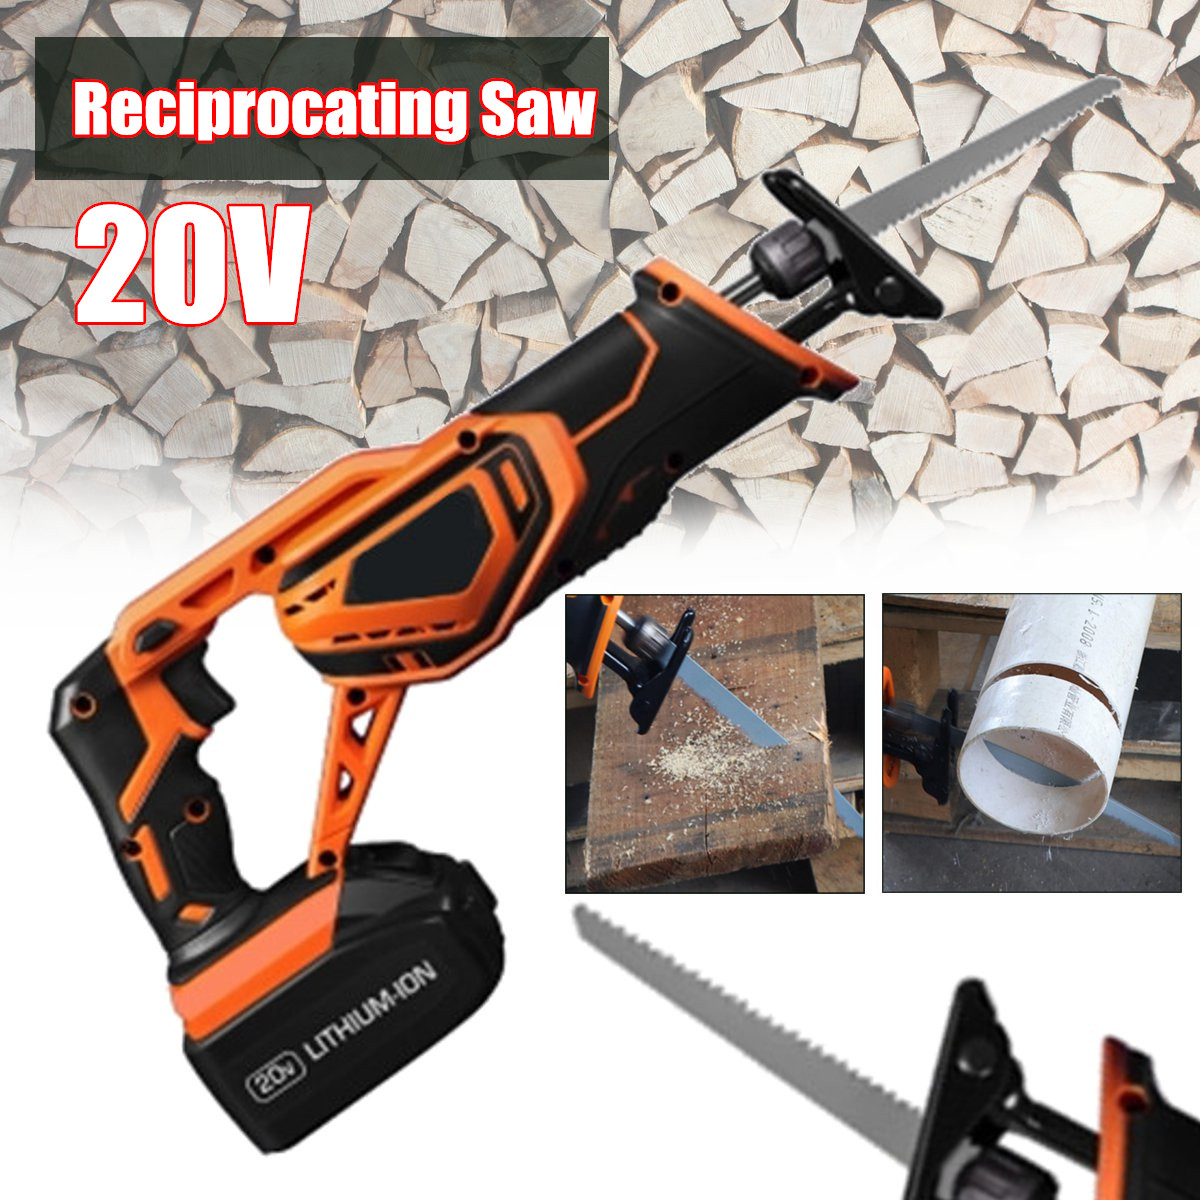 20V 3000mAh Portable Rechargeable Reciprocating Saw Wood Cutting Saw Electric Wood Metal Plastic Saw 1pc 5804 li 12 mini electric curve sawing wood working reciprocating saw with led